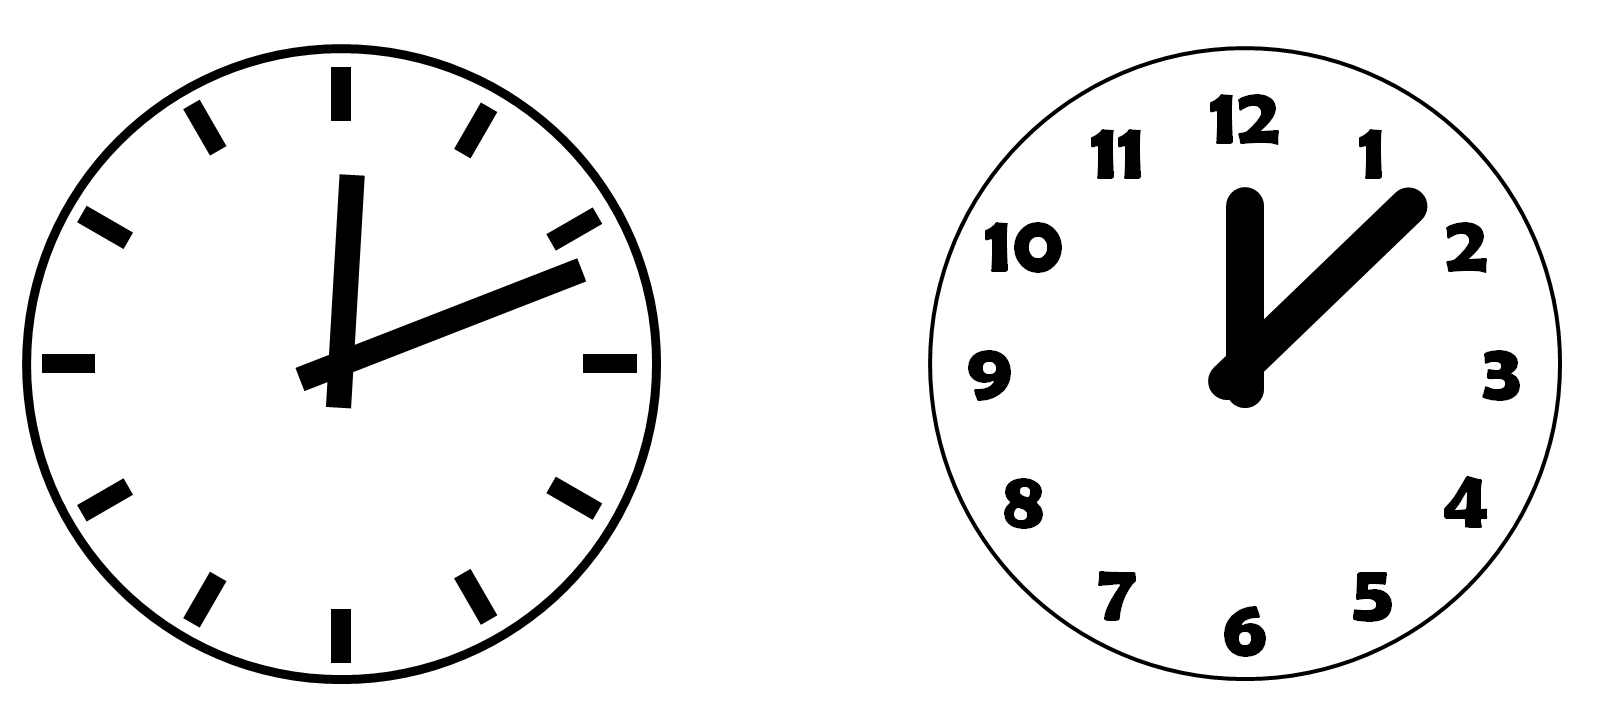 Clock clipart roman numerals. Drawing in powerpoint icons